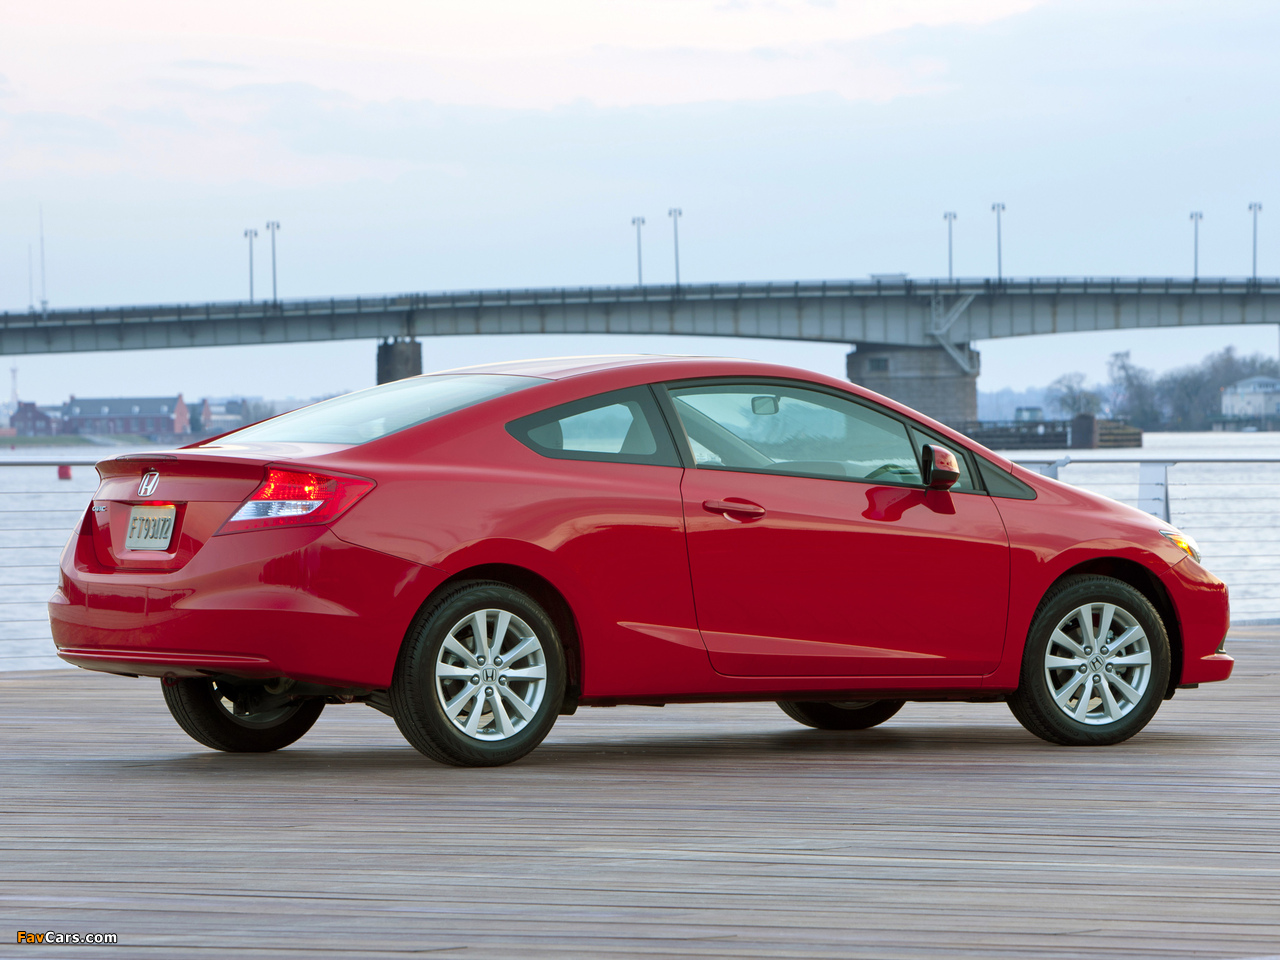 Honda Civic Coupe Us Spec 2011 12 Wallpapers 1280x960